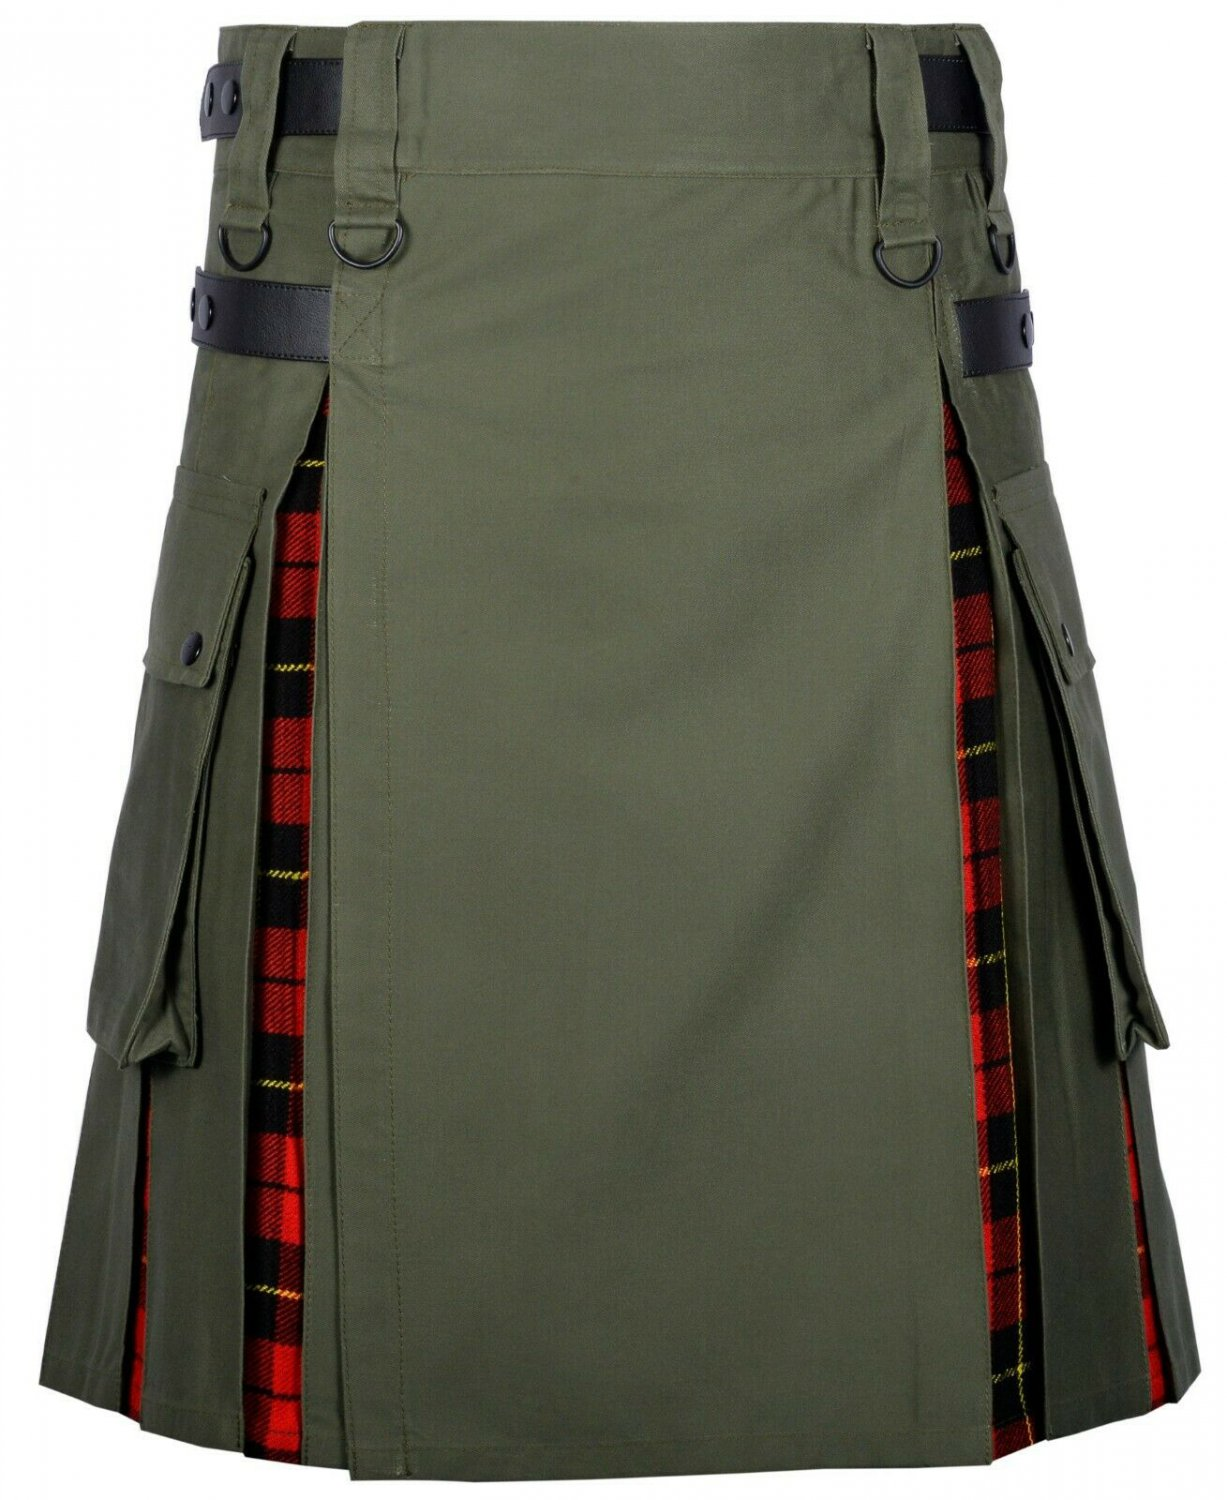 60 Size Olive Green Cotton-Wallace tartan Scottish Utility Cargo Hybrid Cotton Kilt For Men